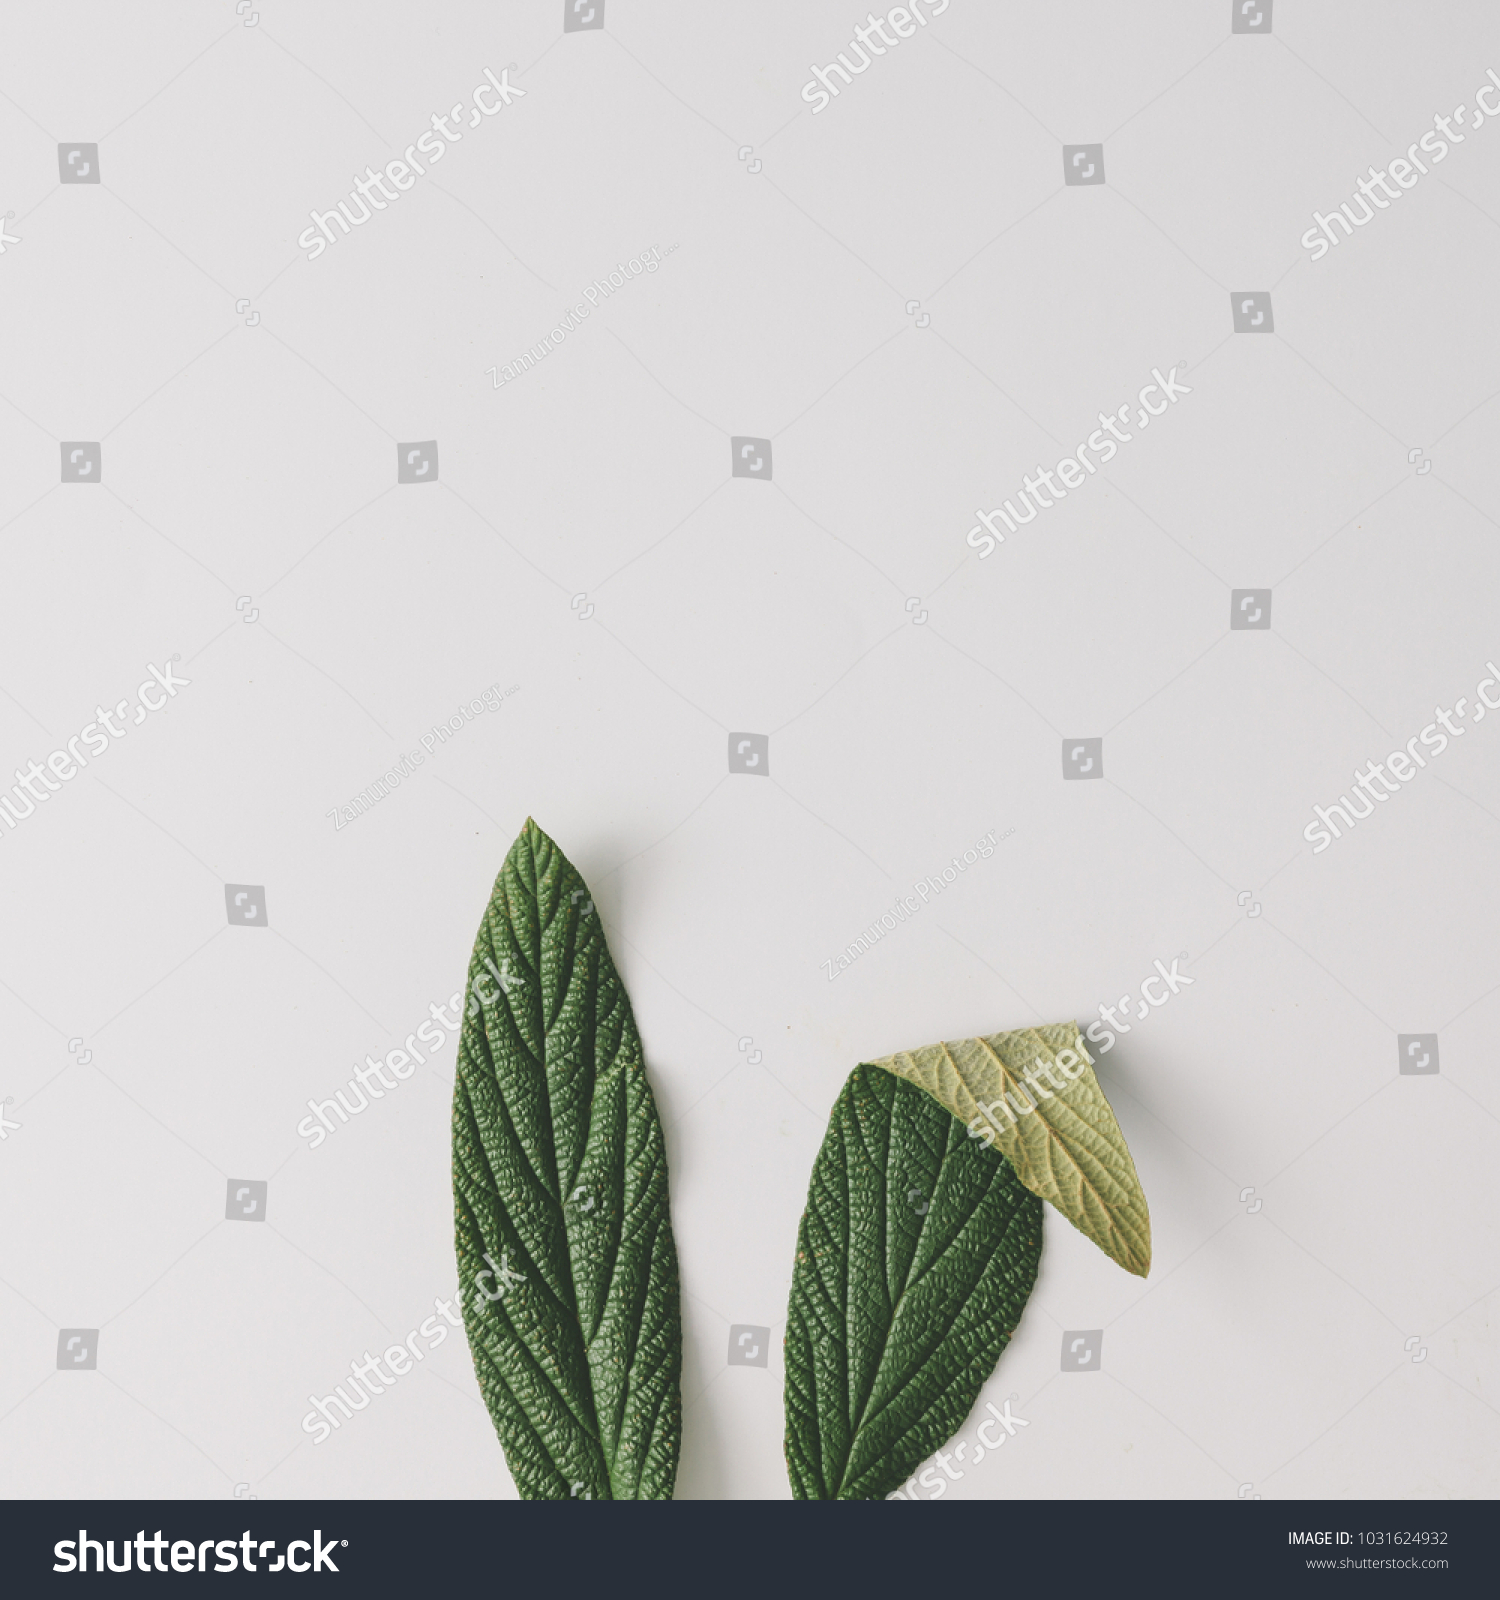 Bunny rabbit ears made of natural green leaves on bright background. Easter minimal concept. Flat lay. #1031624932